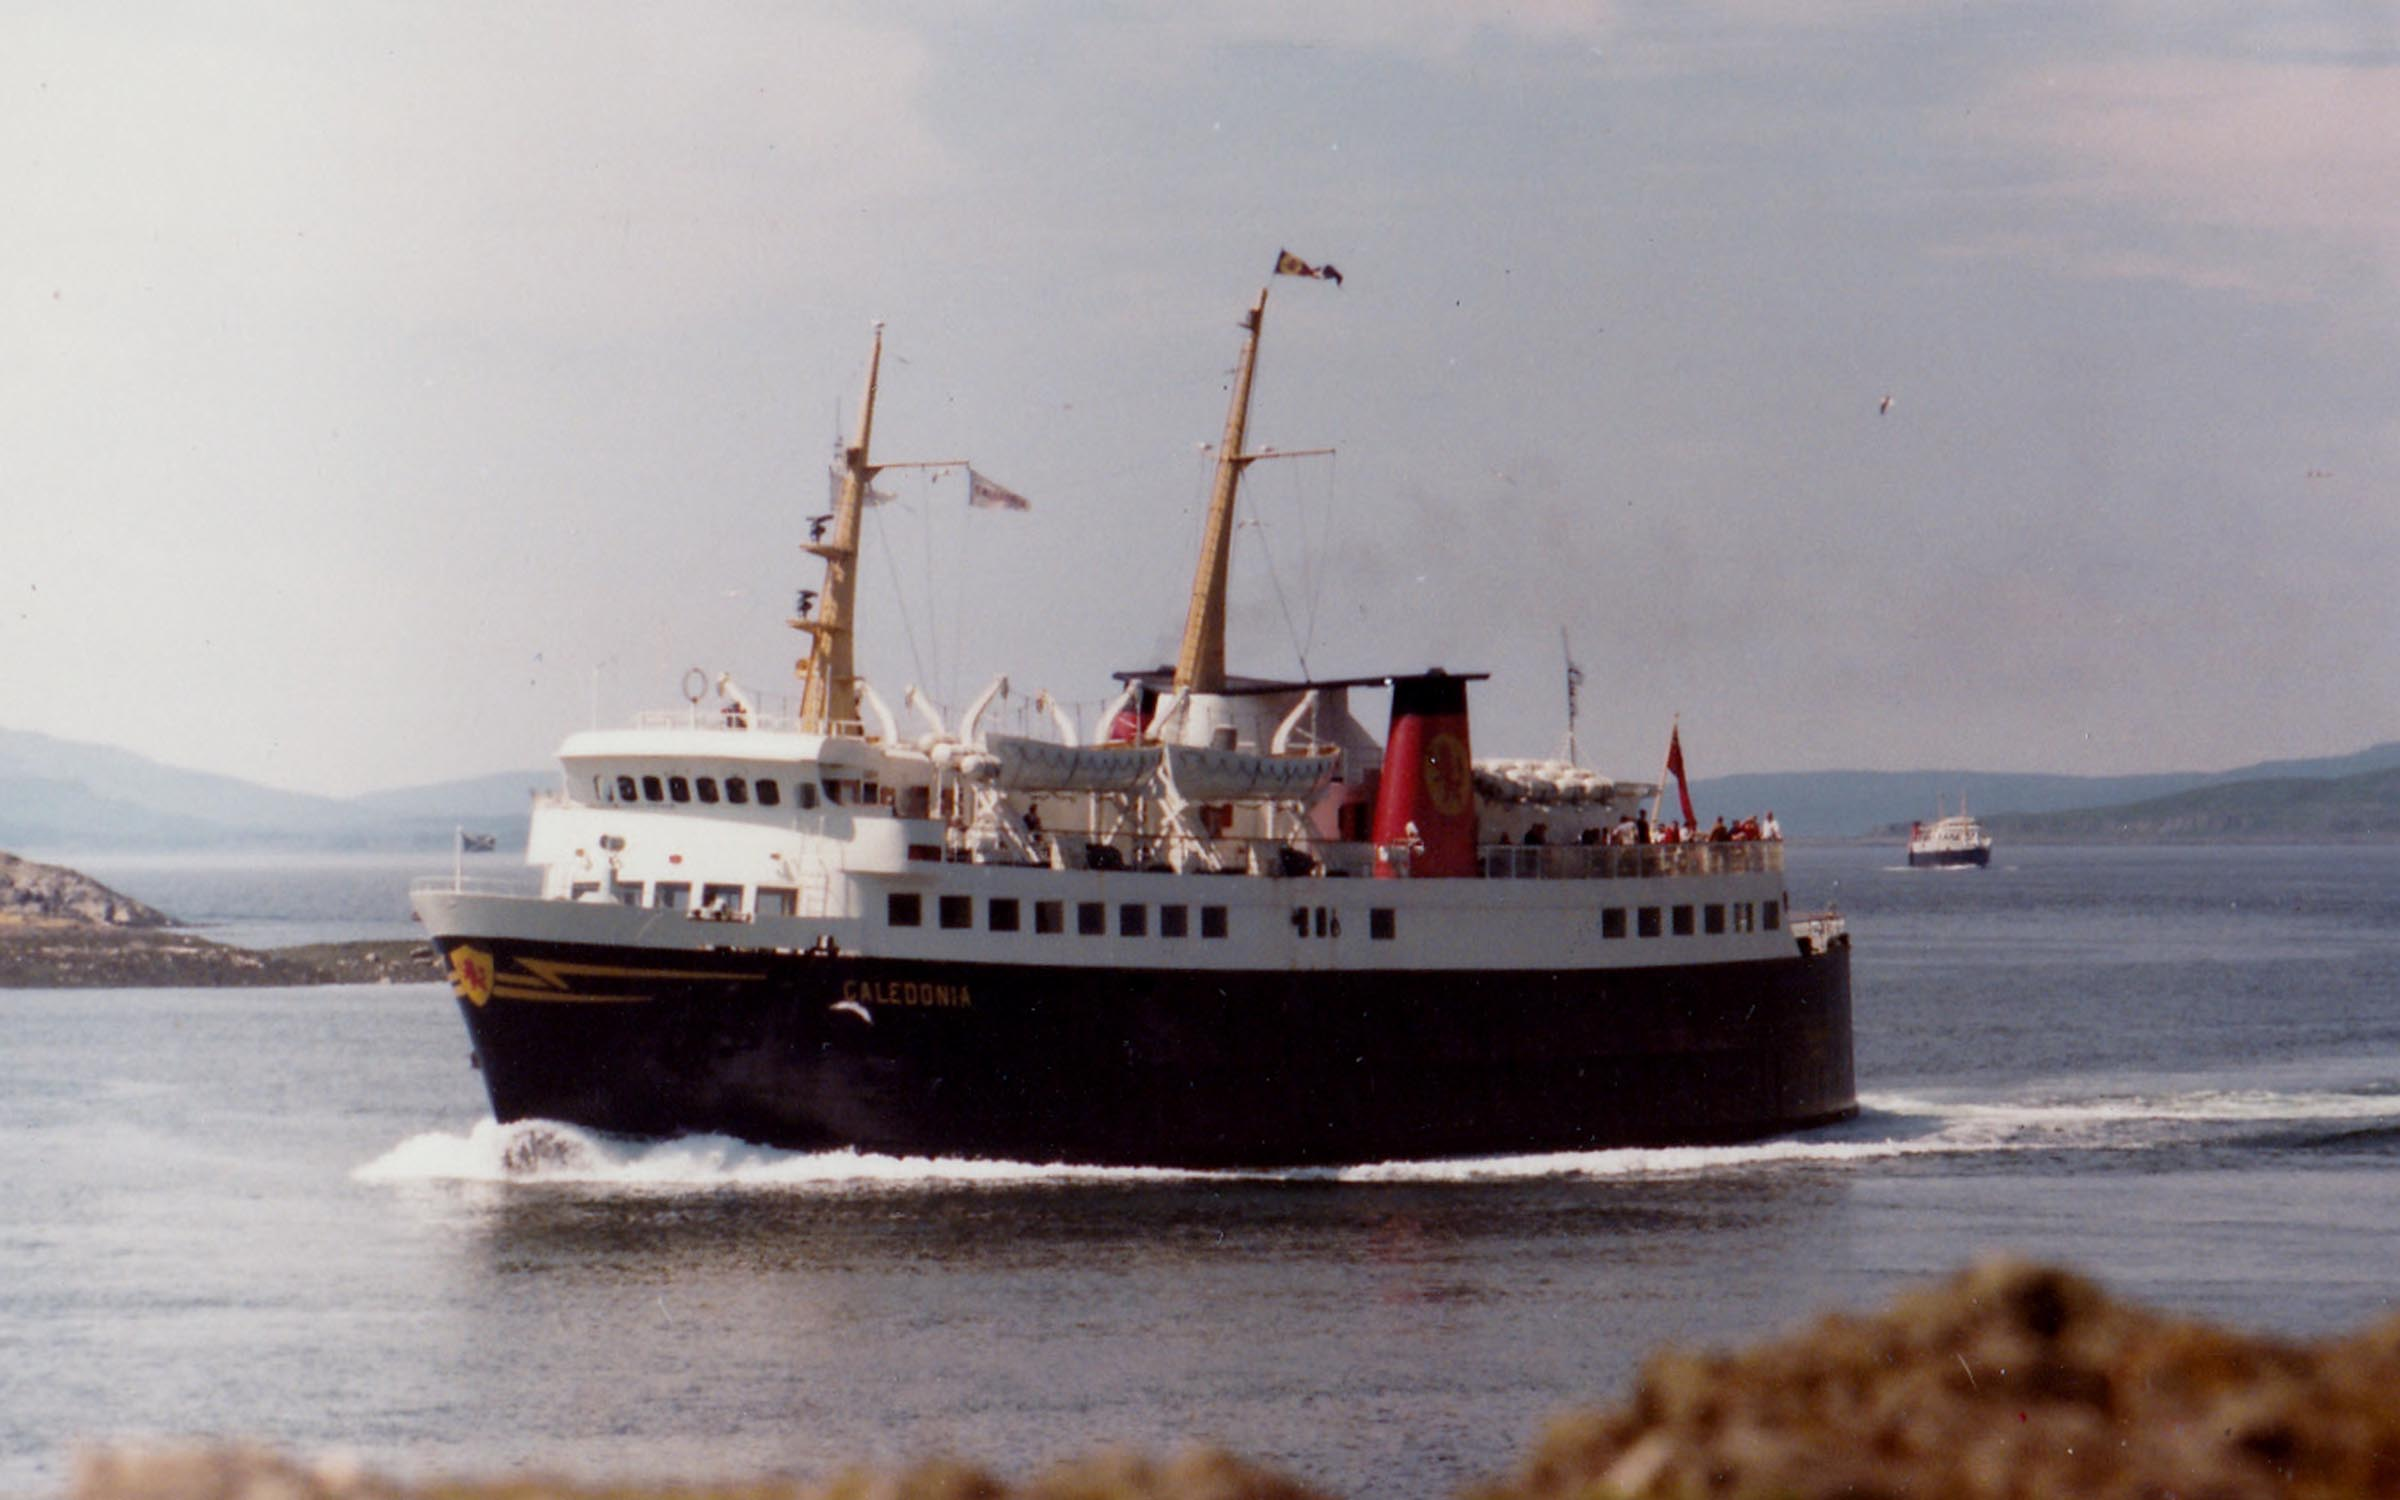 Caledonia entering Oban Bay with Iona following (Jim Aikman Smith)